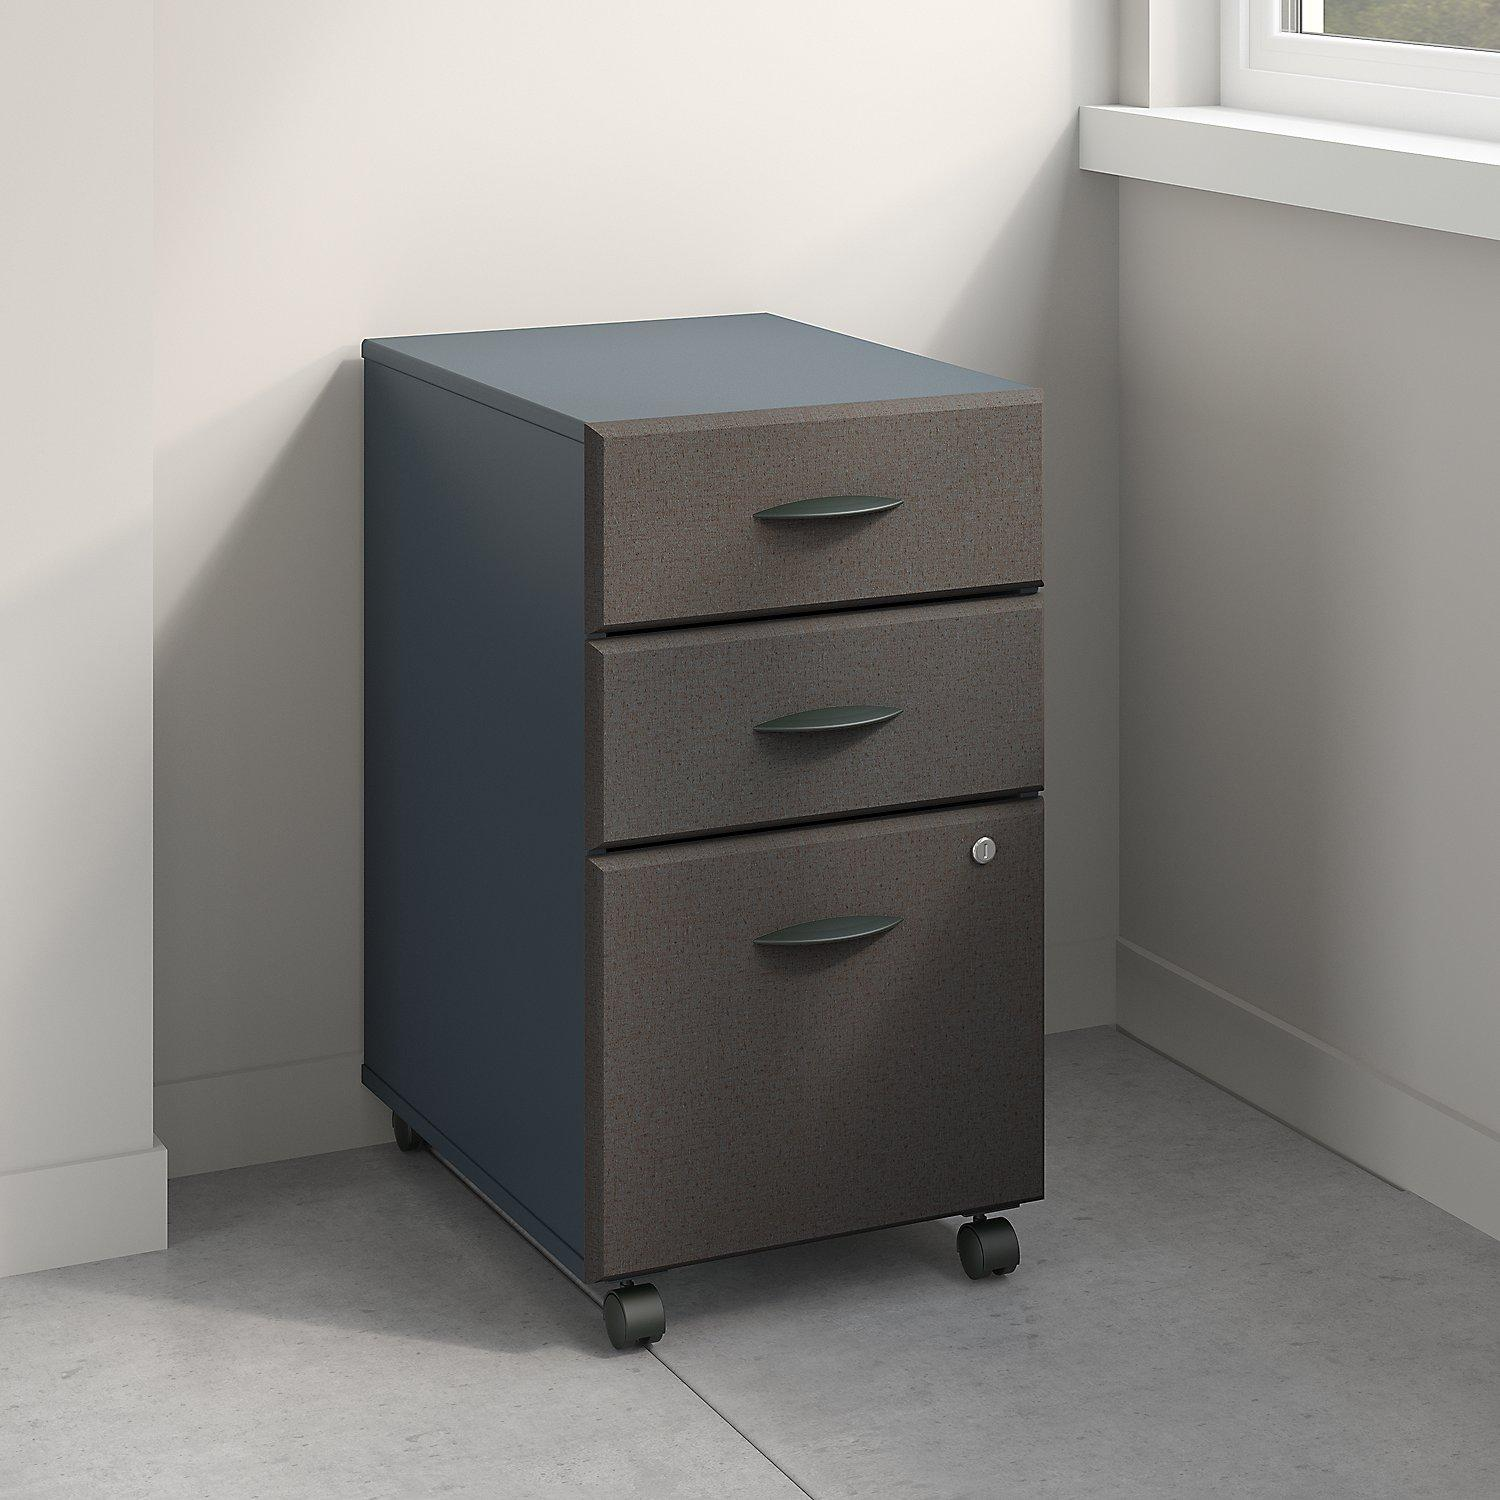 Amazon series a unassembled three drawer mobile file